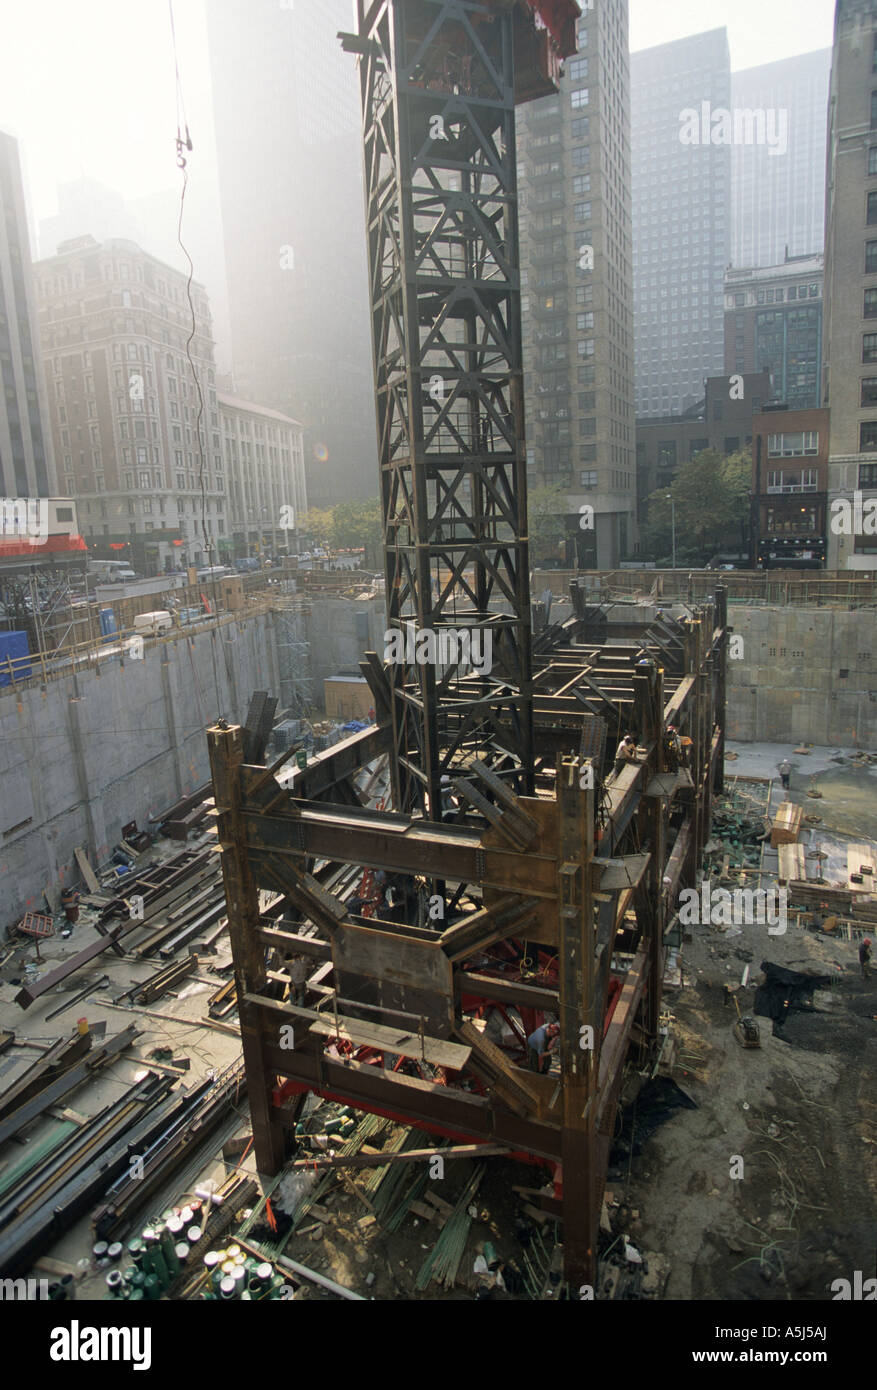 Tower Crane Ny : Steel core and crane tower on random house building at